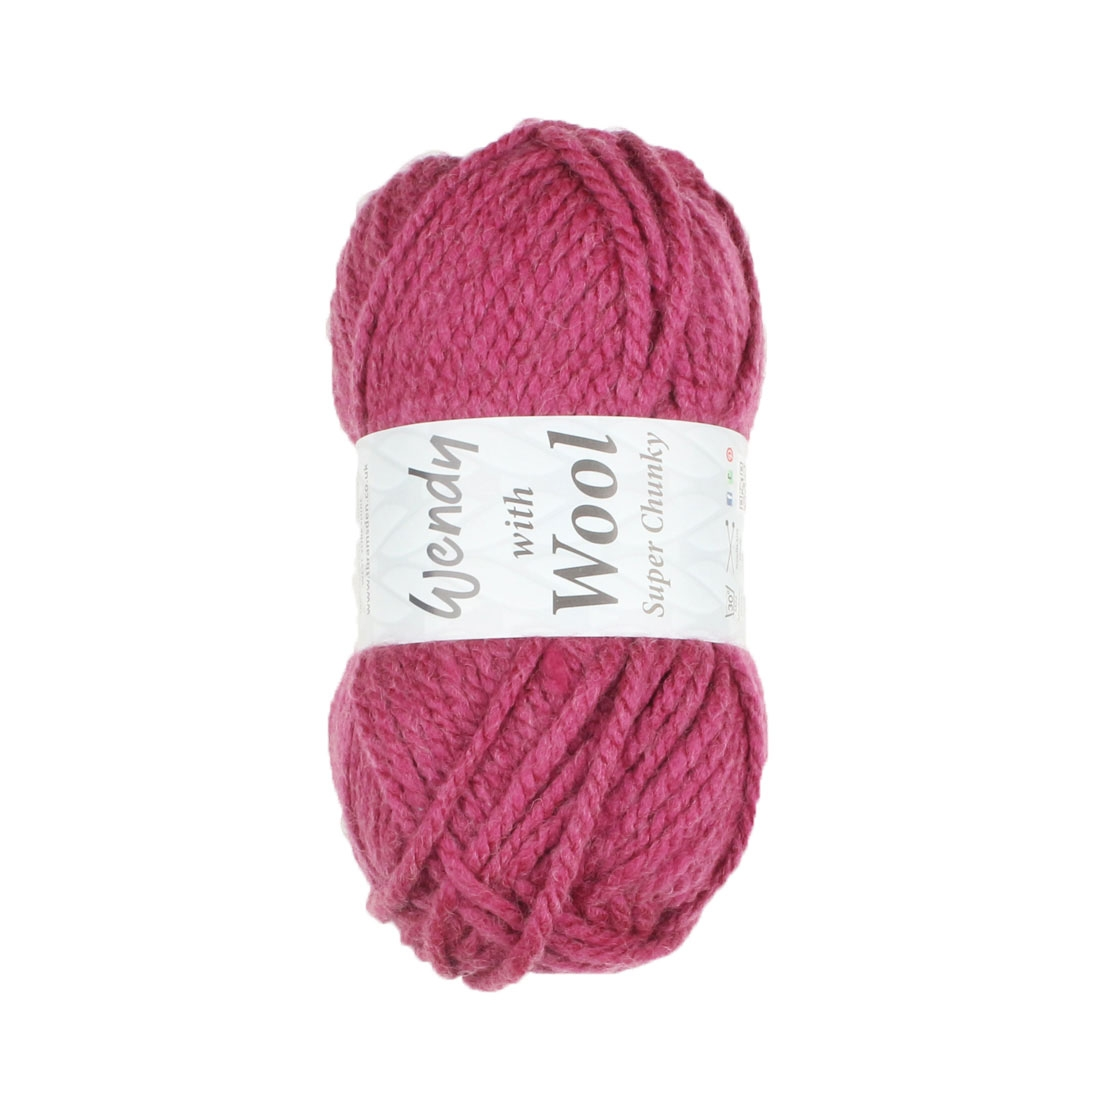 Wendy With Wool Super Chunky 5206